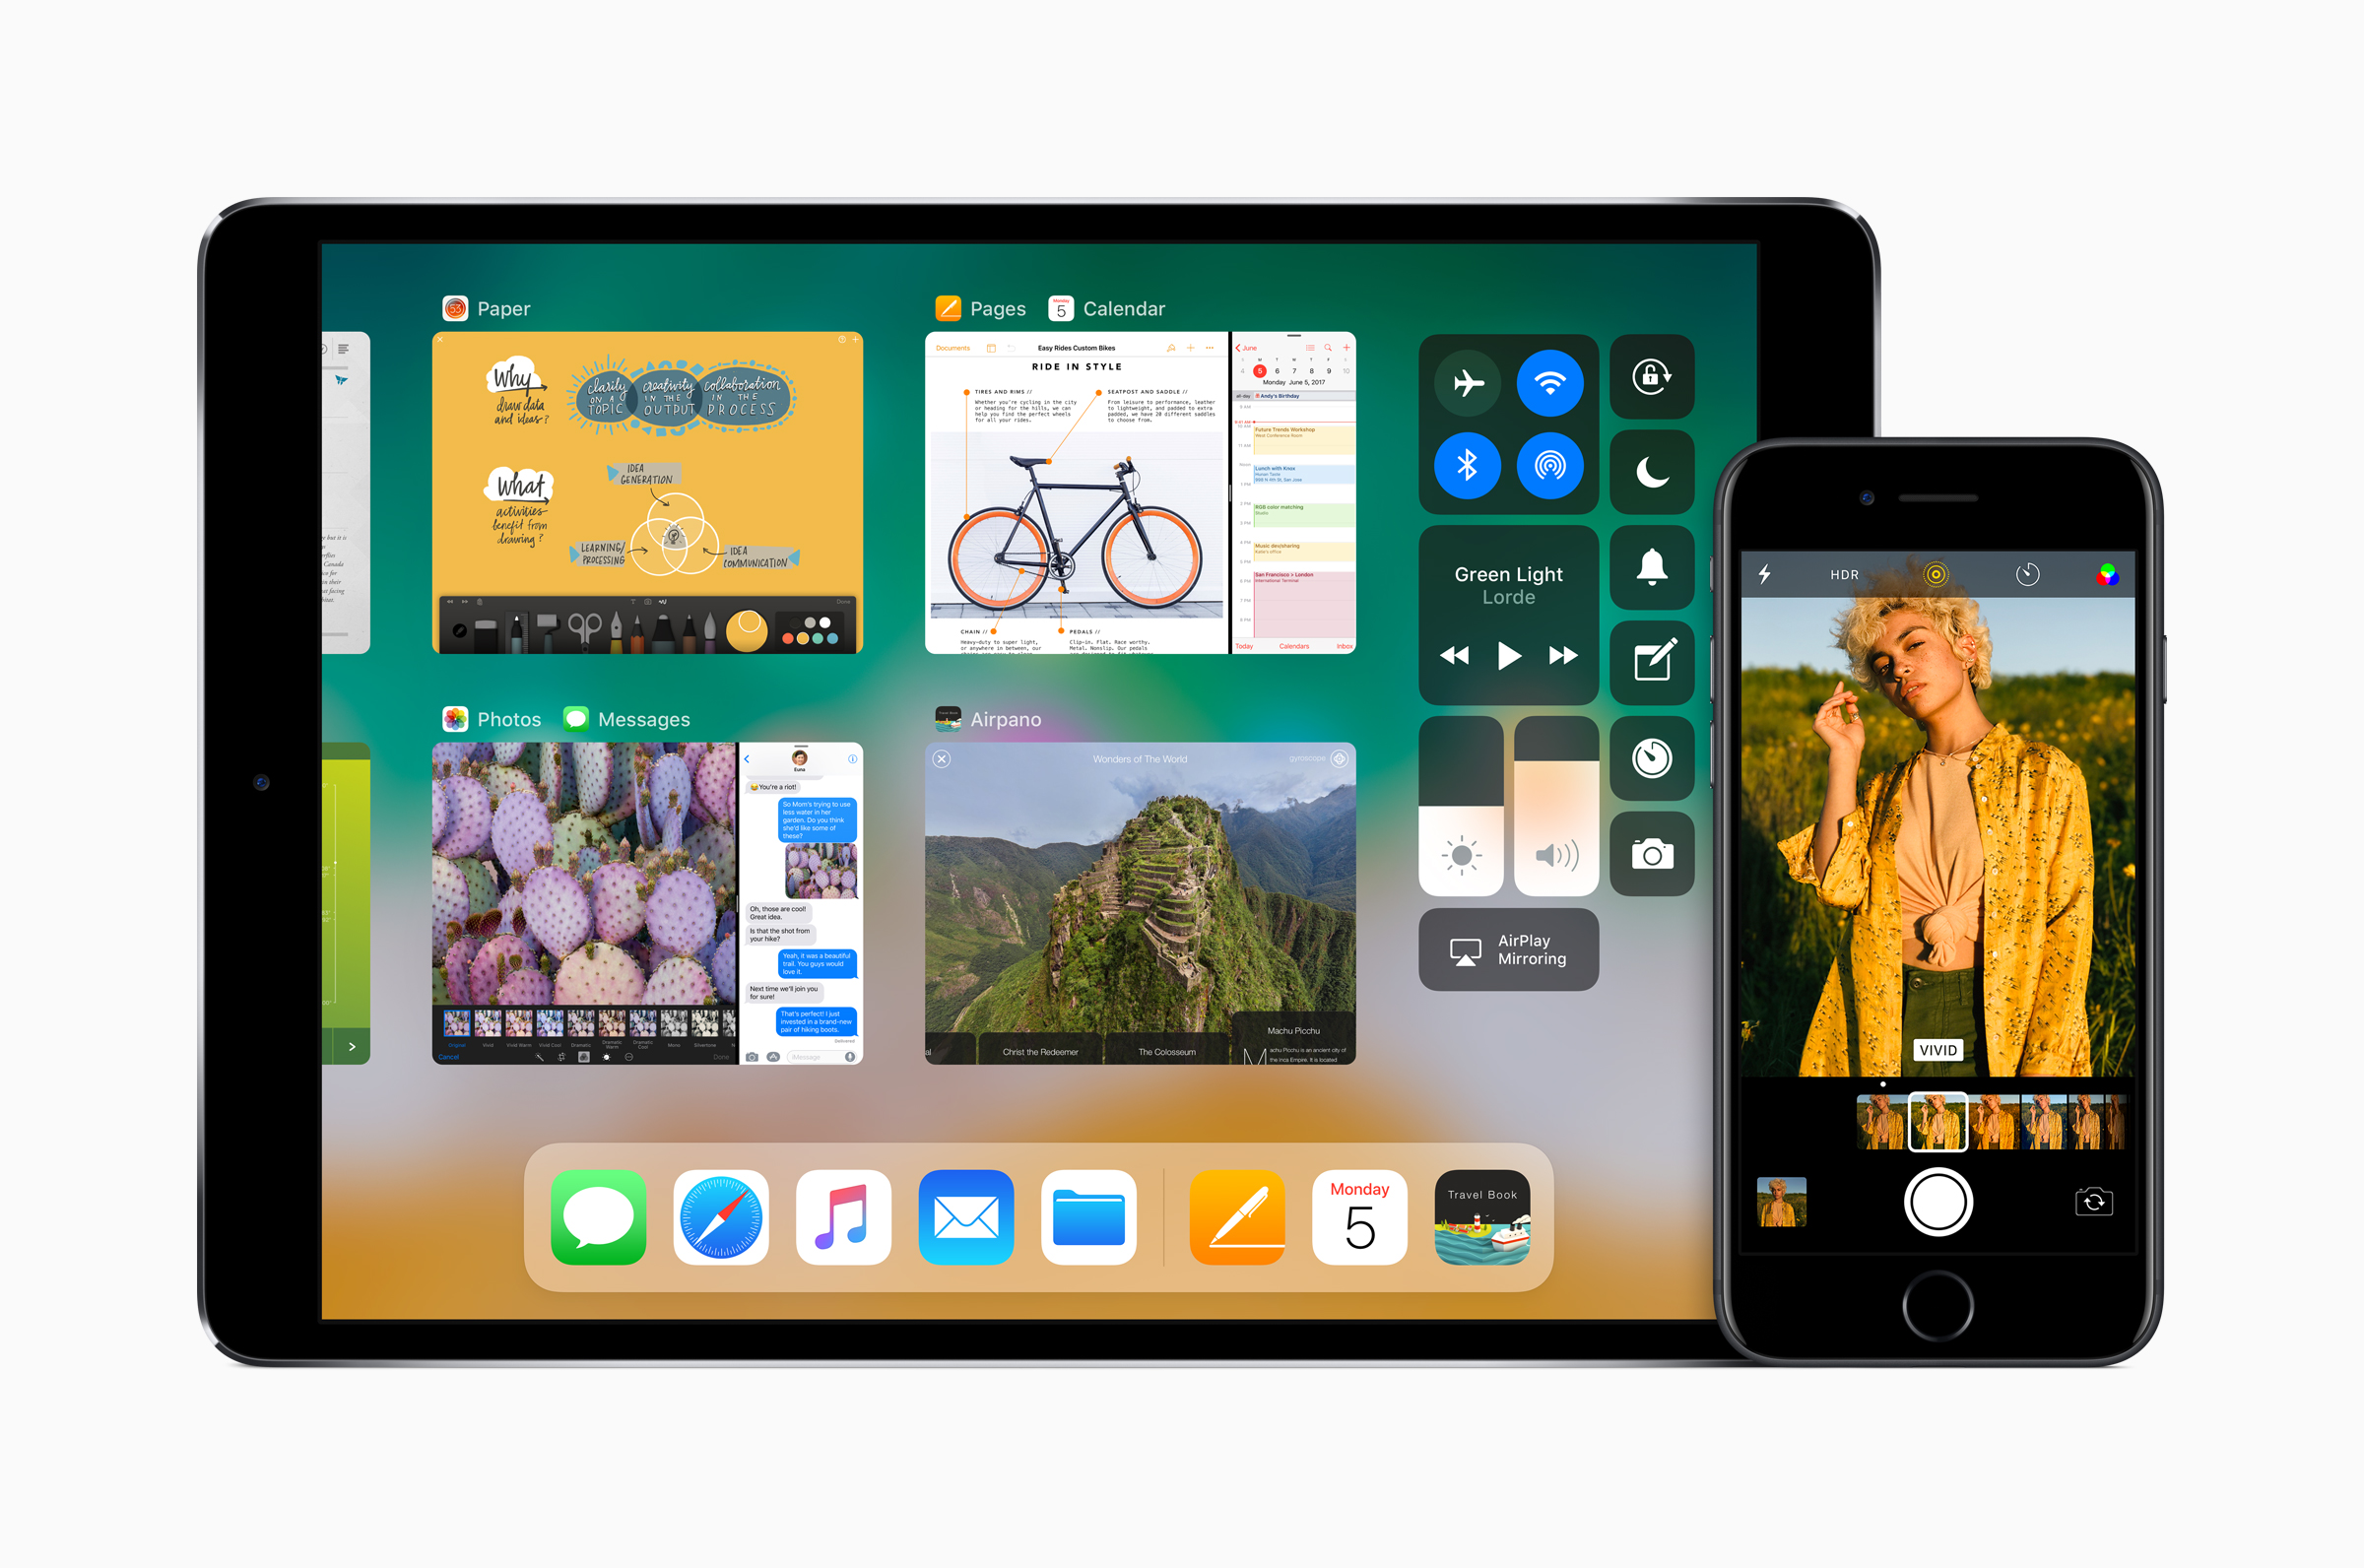 Ios 11 Brings Photo Updates To Iphone And Ipad Digital